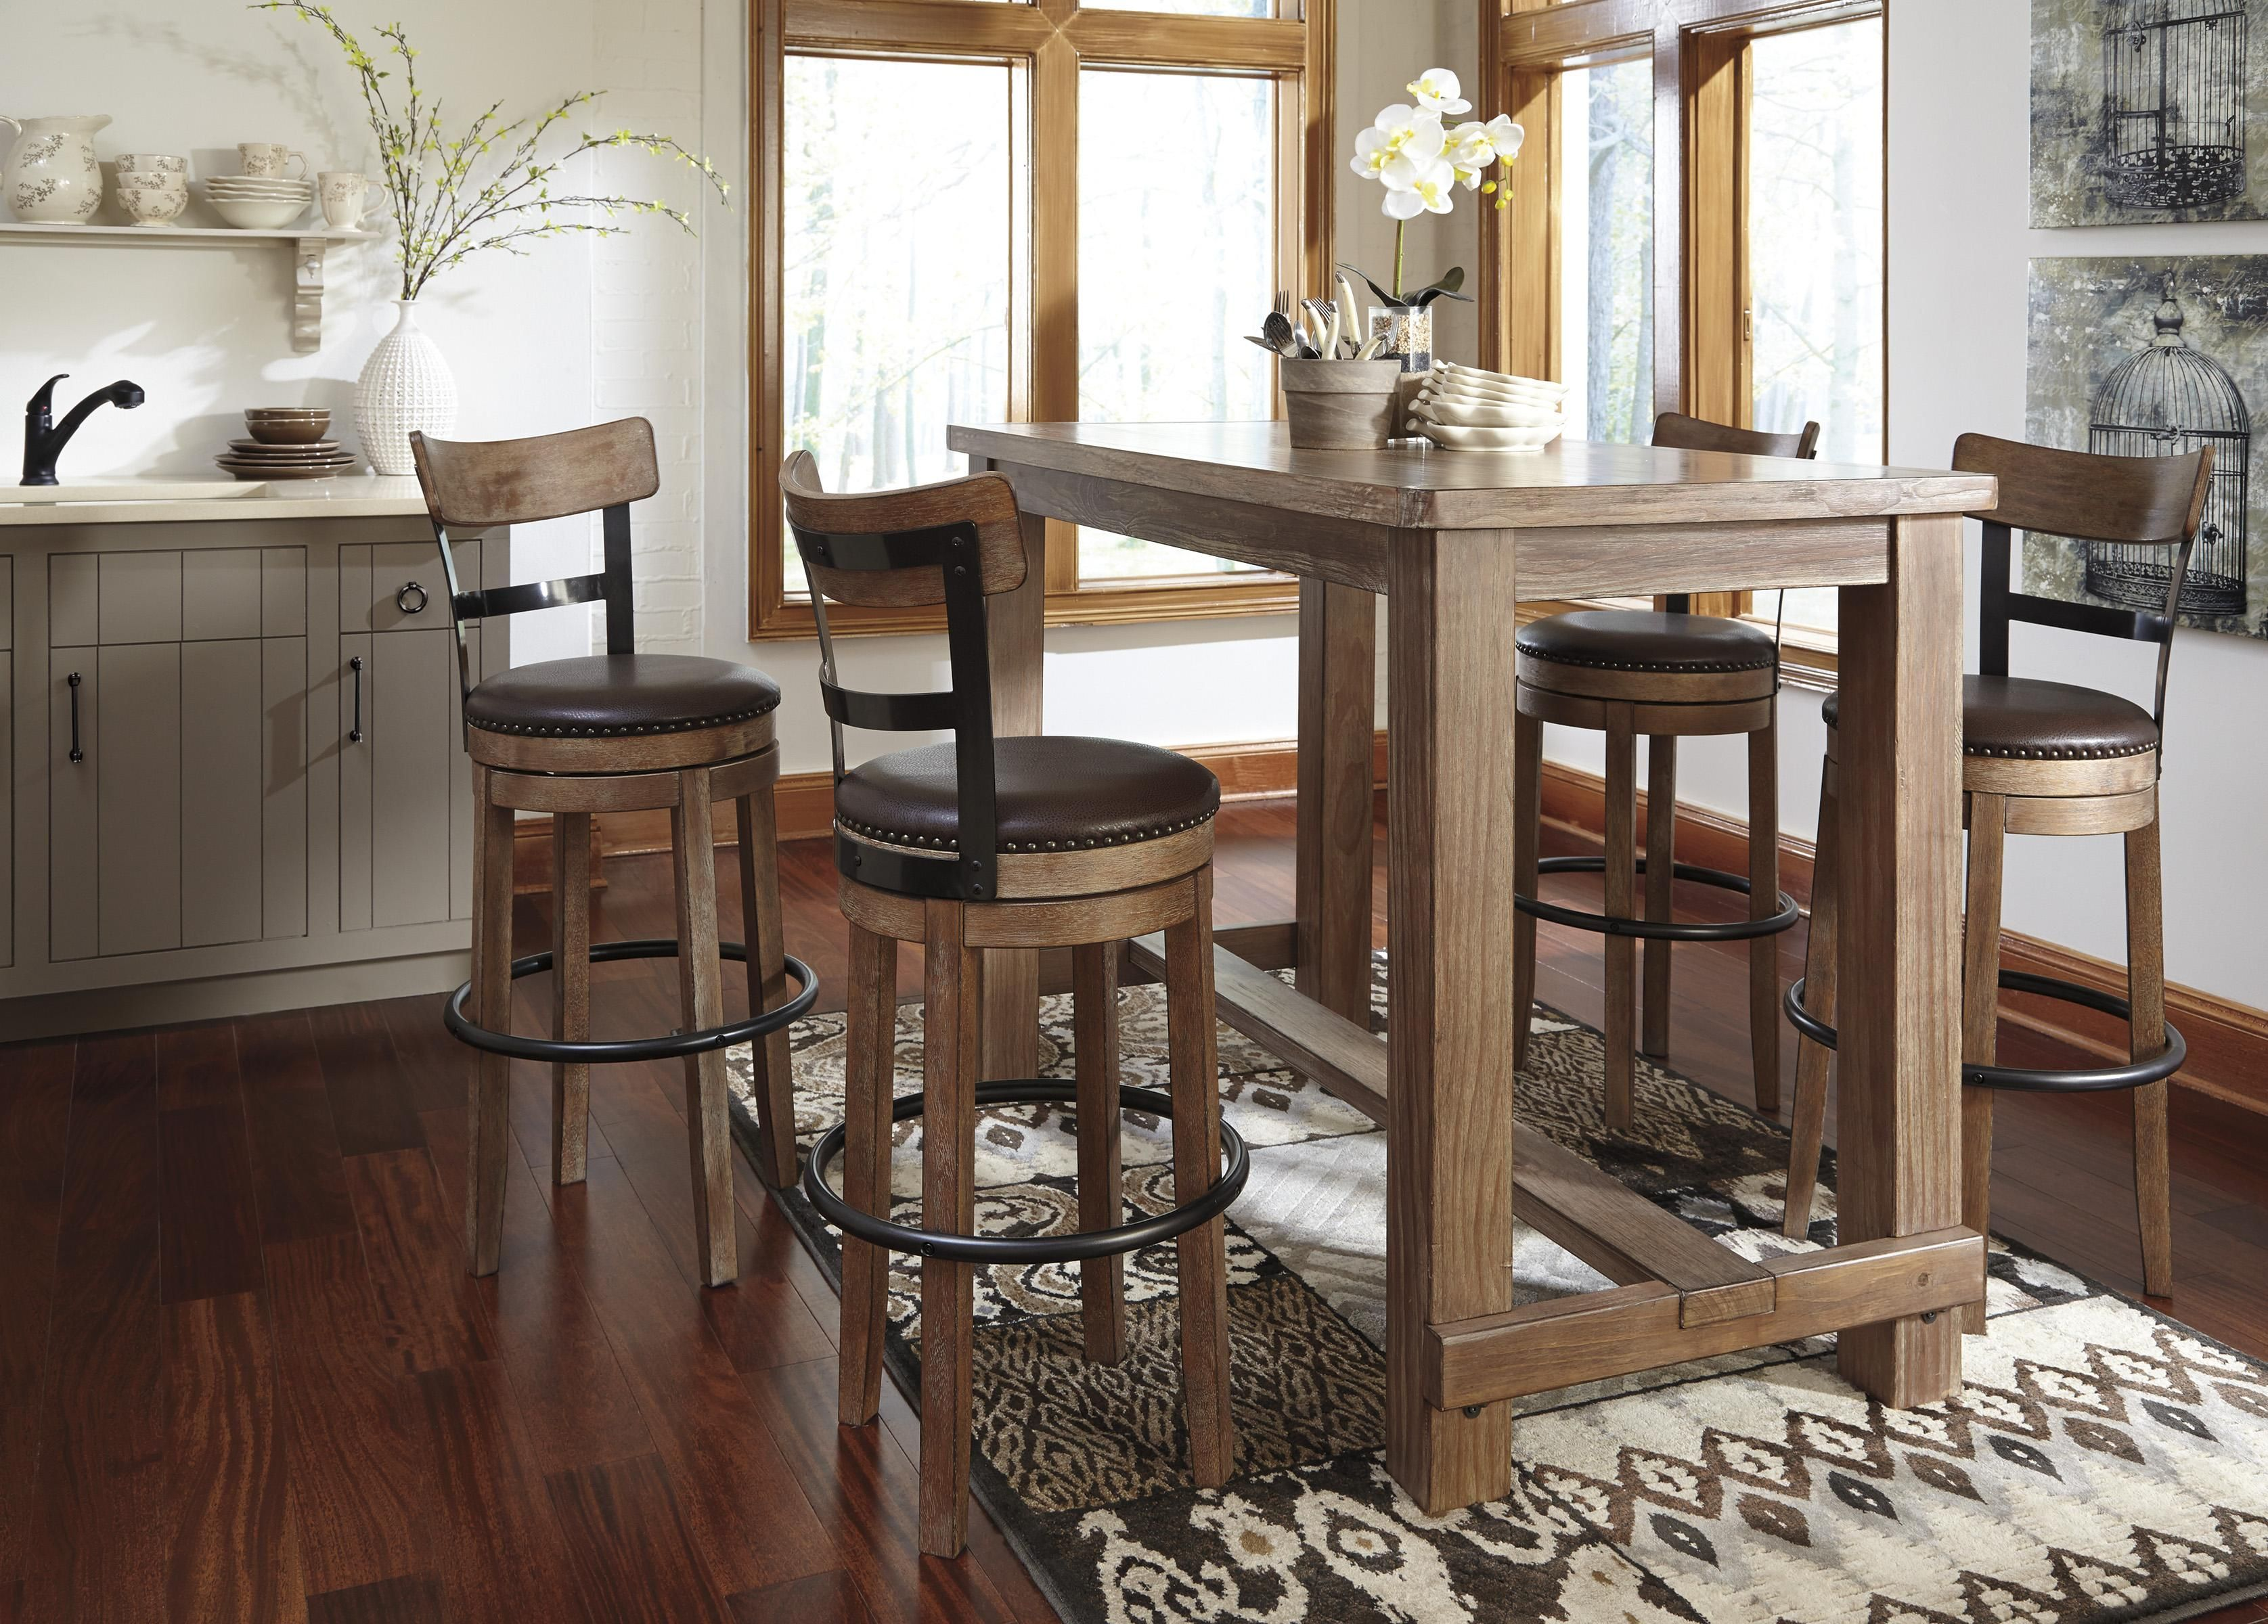 The True Rustic Beauty That Embodies The Vintage Casual Design Has Never  Come To Life More Than With The Look Of The Pinnadel Bar Table Set W/  Swivel ...